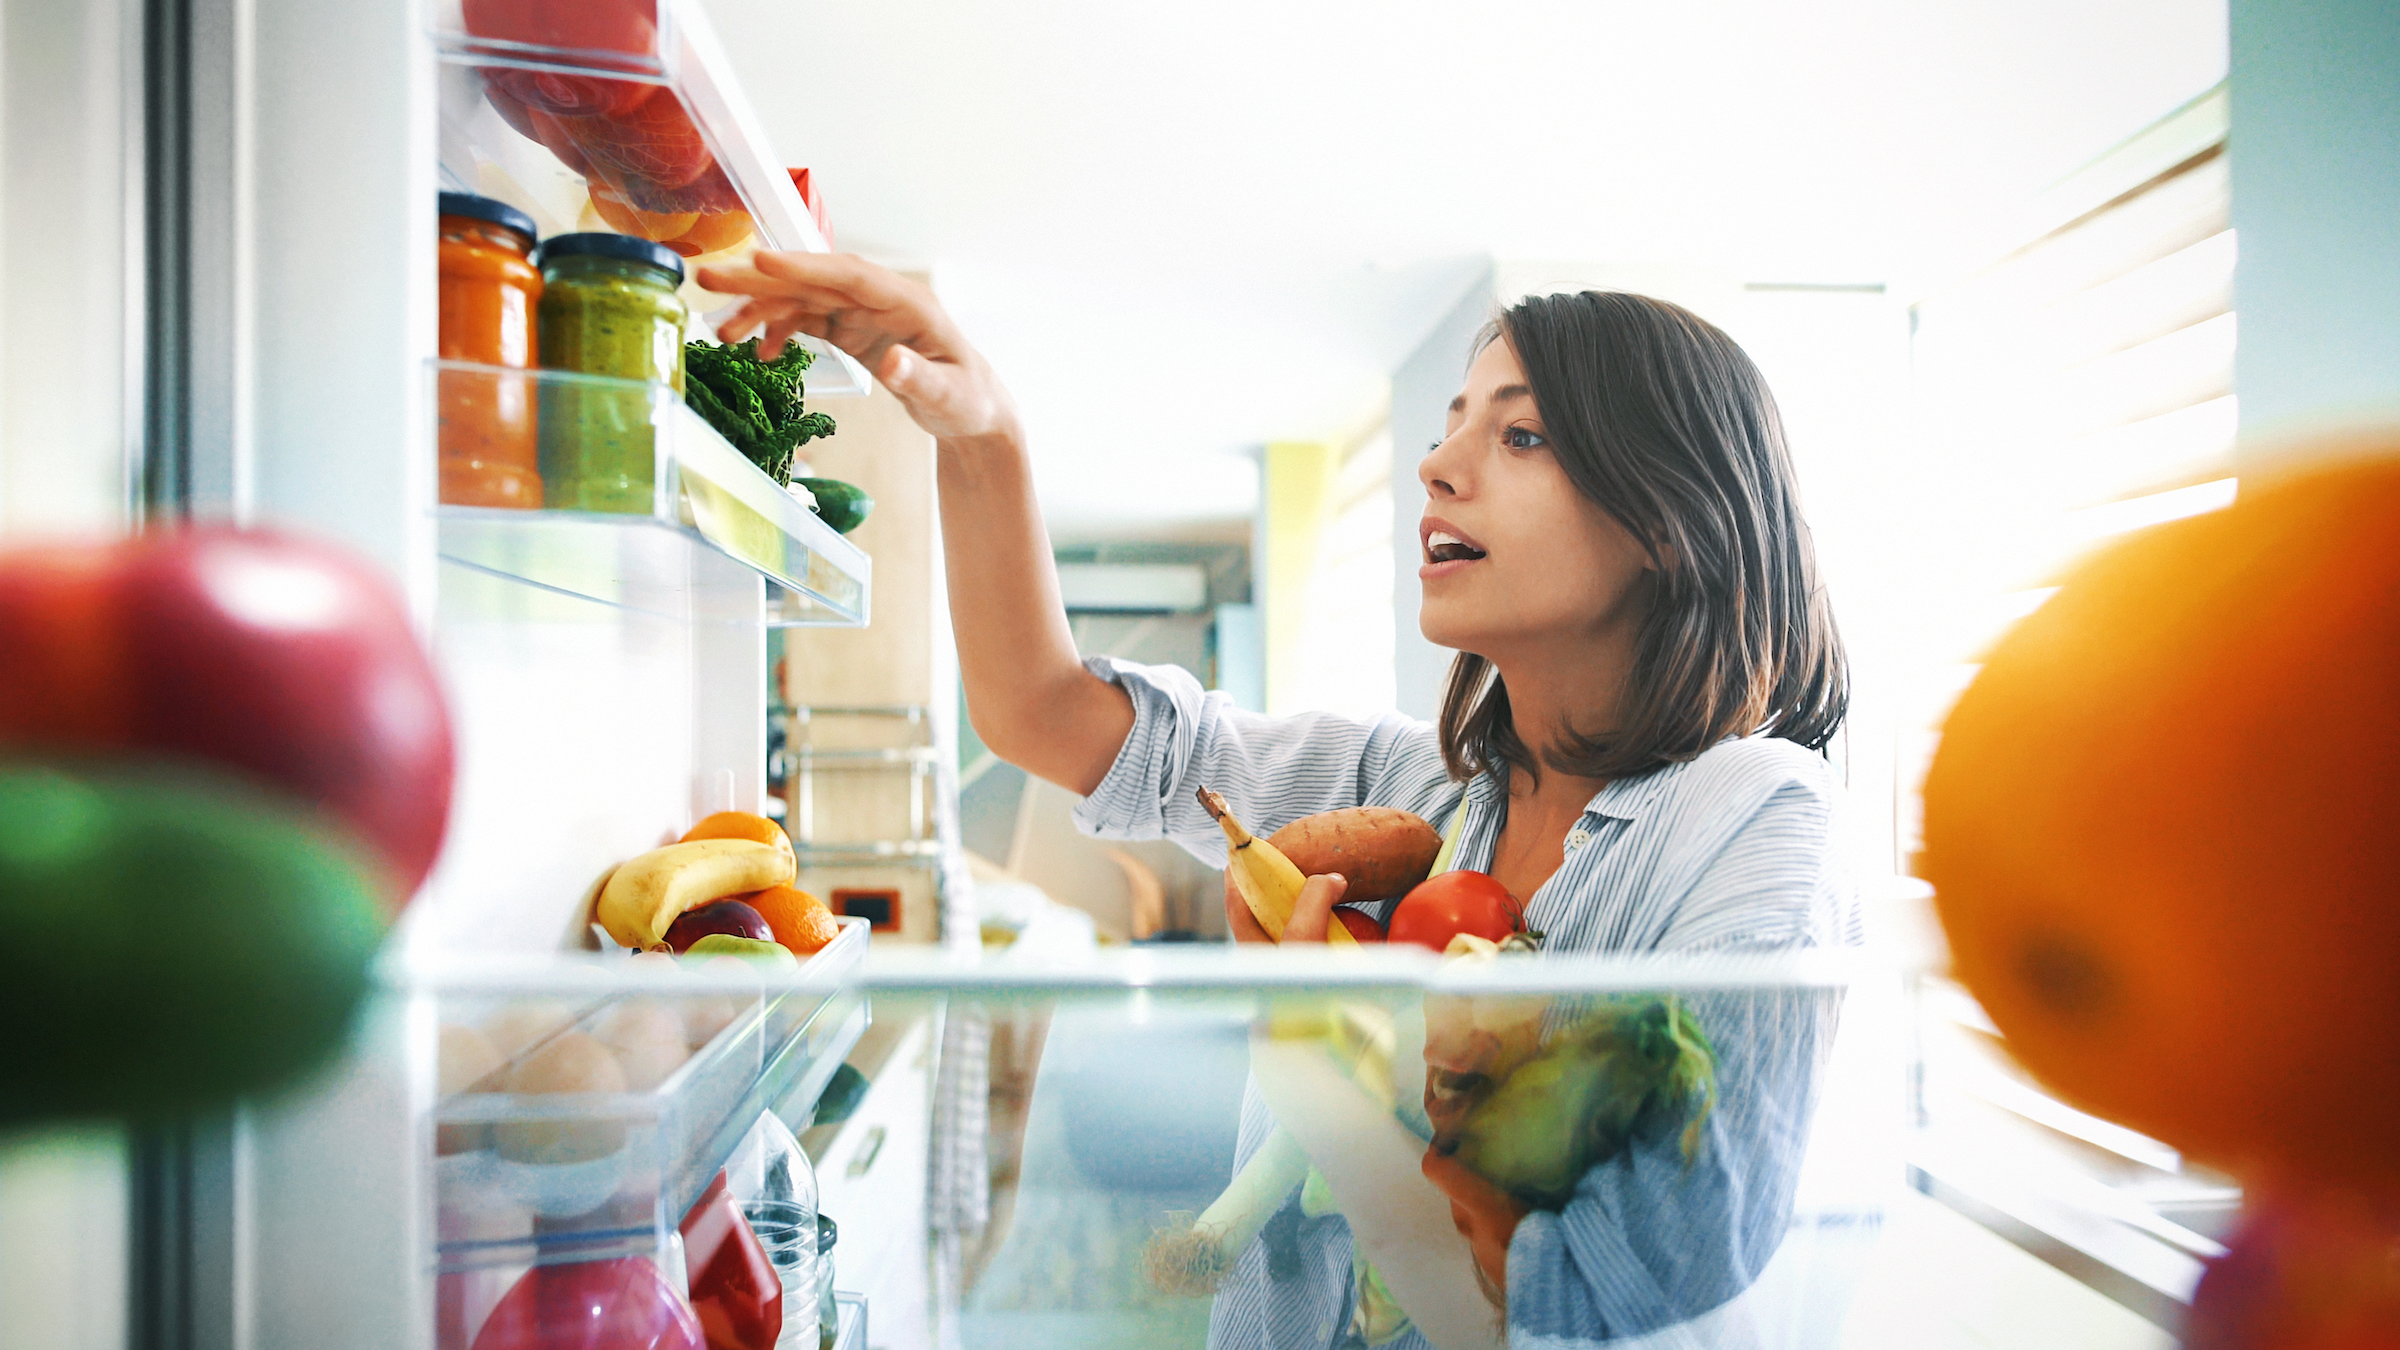 Woman retrieving colorful fruits and vegetables from refrigerator